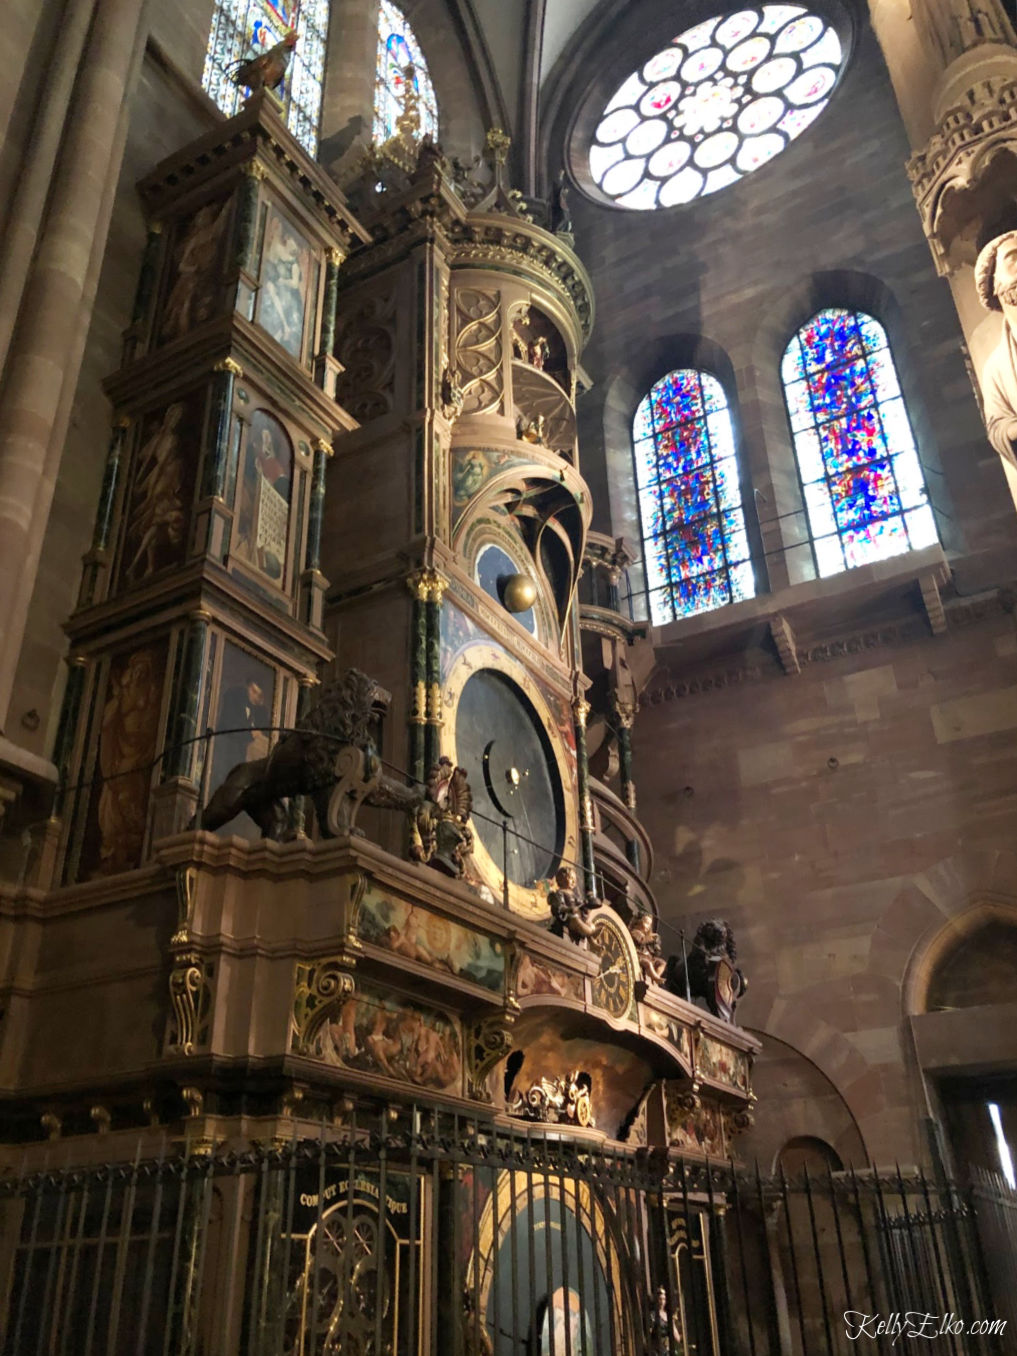 Don't miss the astronomical clock in the Strasbourg Cathedral kellyelko.com #astronomicalclock #cathedral #strasbourg #strasbourgcathedral #rivercruise #luxurytravel #travelblog